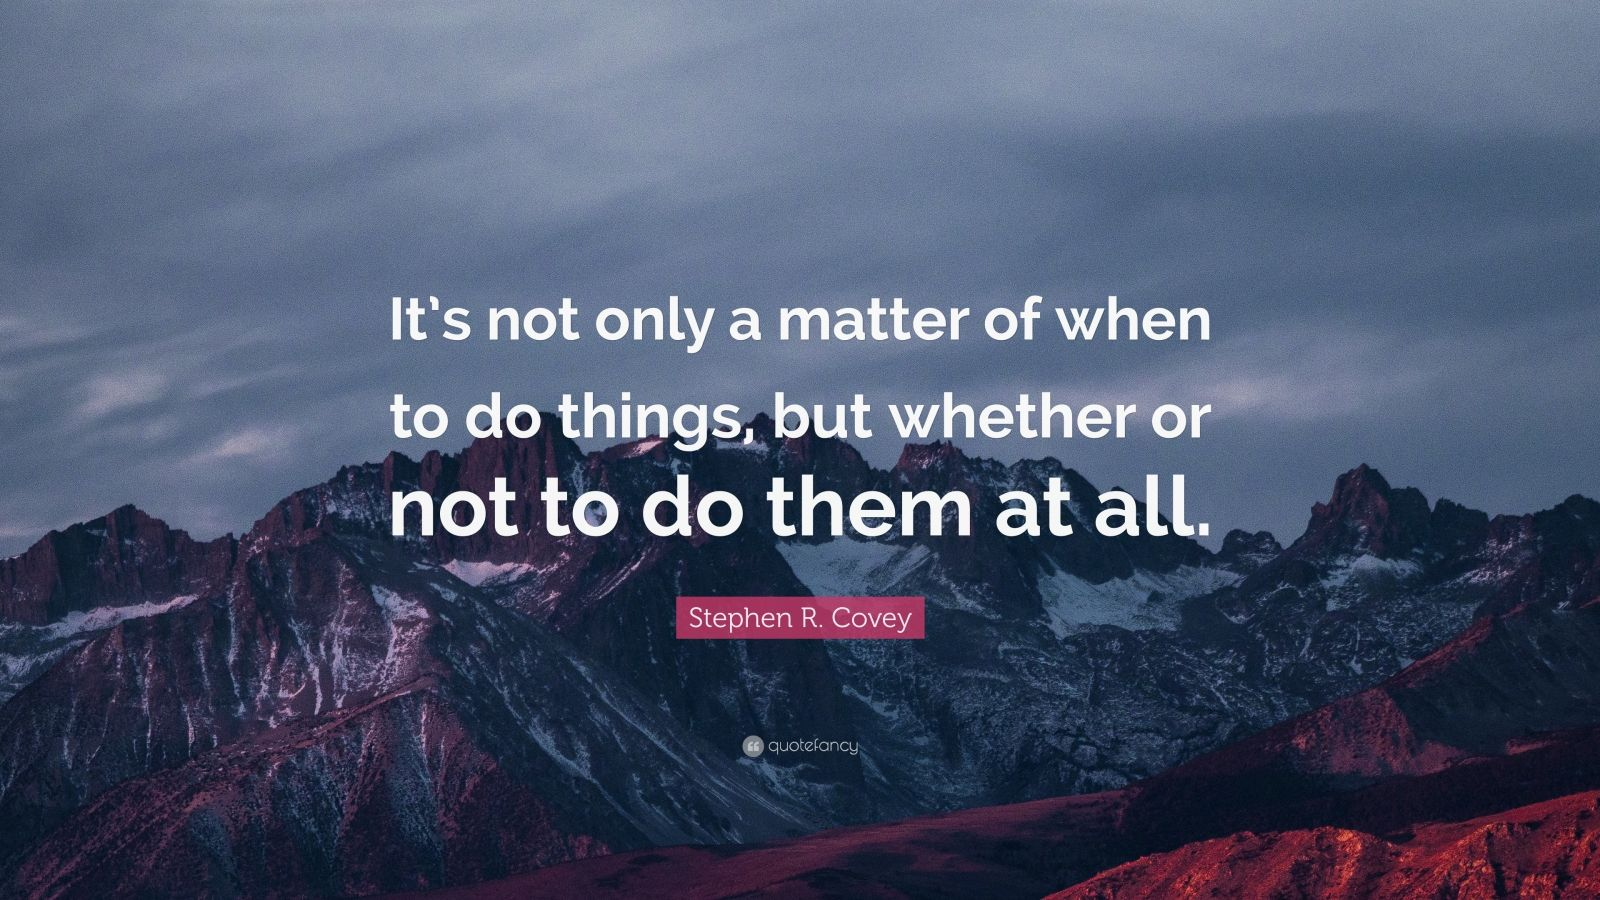 """Stephen R. Covey Quote: """"It's not only a matter of when to do things, but whether or not to do them at all."""""""